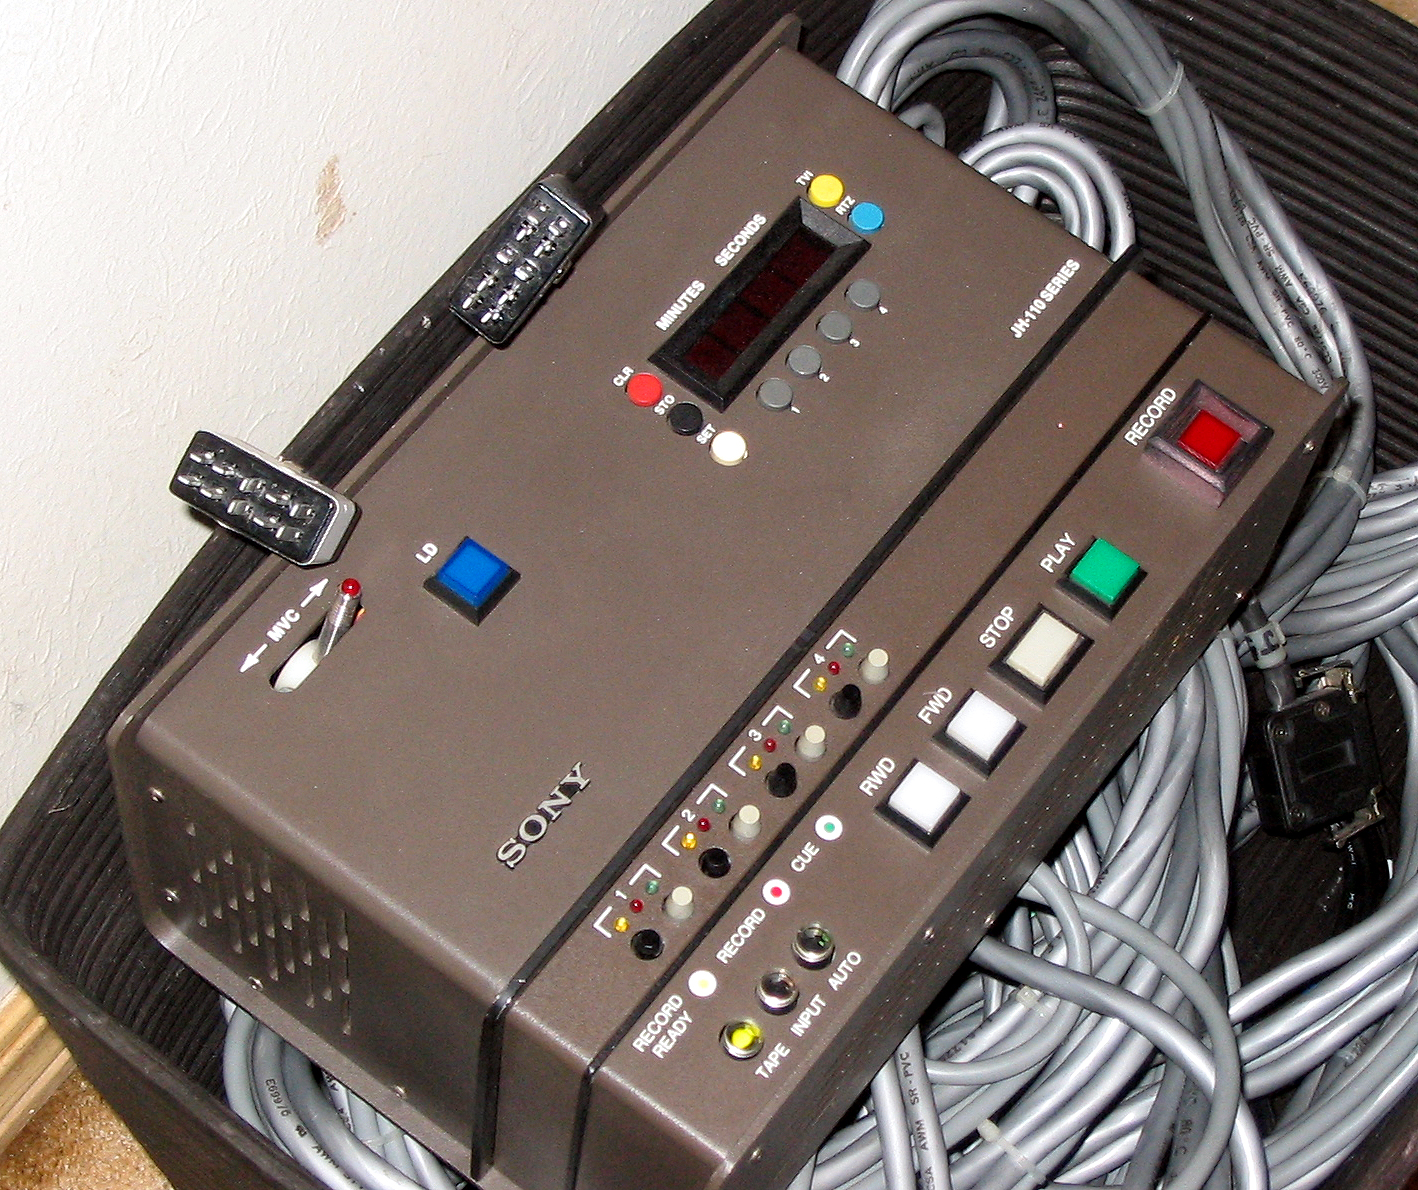 Warning Mci Jh 110c Remote Wiring 10 Pin Harness One Beau Connector Controls Ready Safe Input Repro Etc For Tracks 1 2 While The Second Is 3 4 If Those Audio Channels Are Present